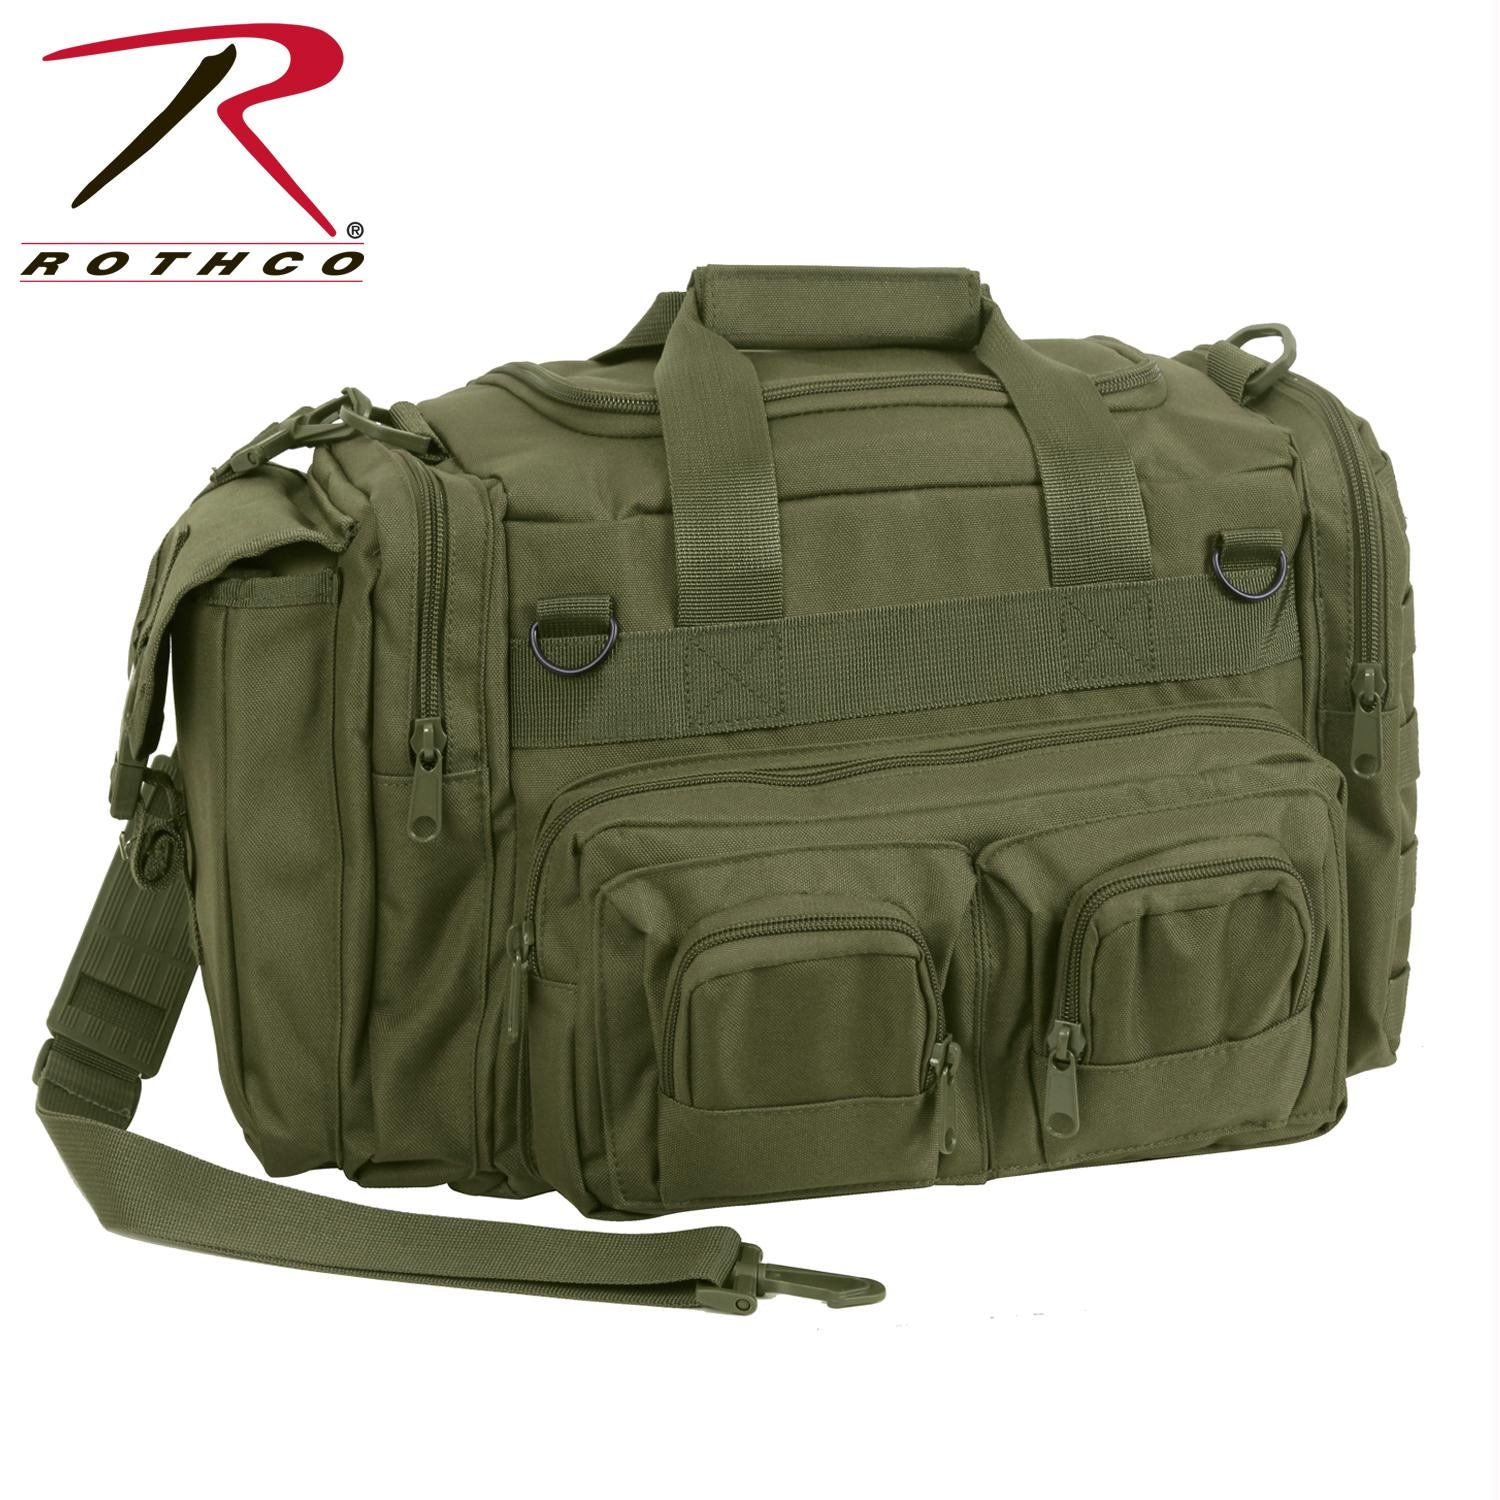 Rothco Concealed Carry Bag - Olive Drab